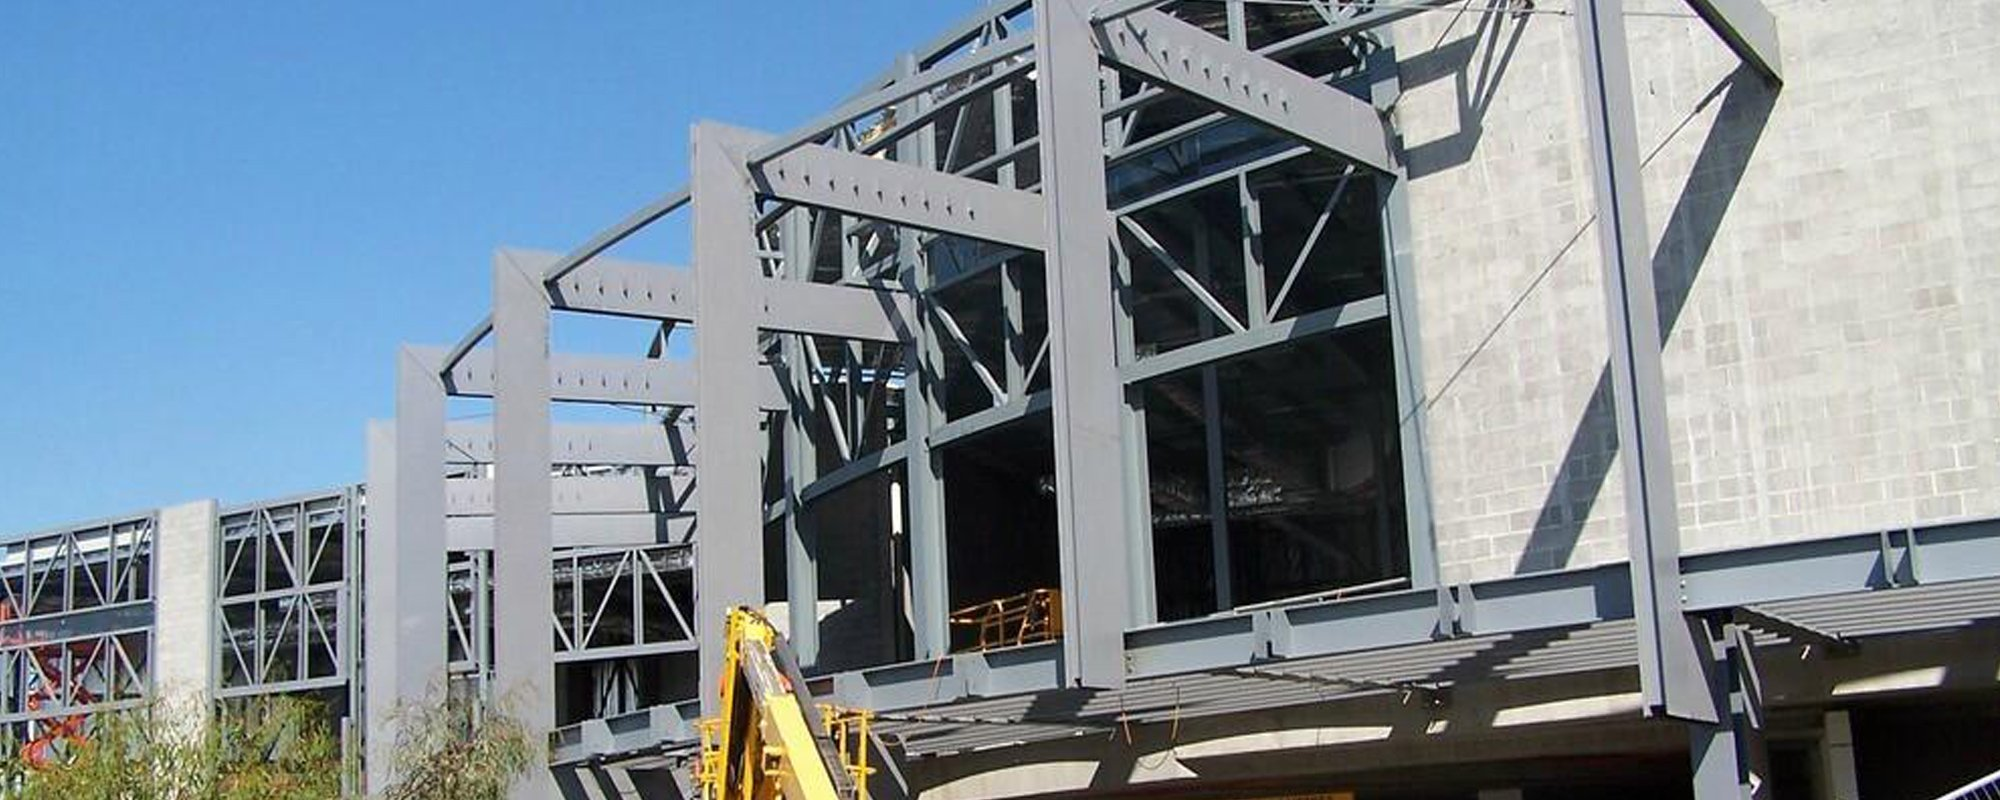 View of a steel structure